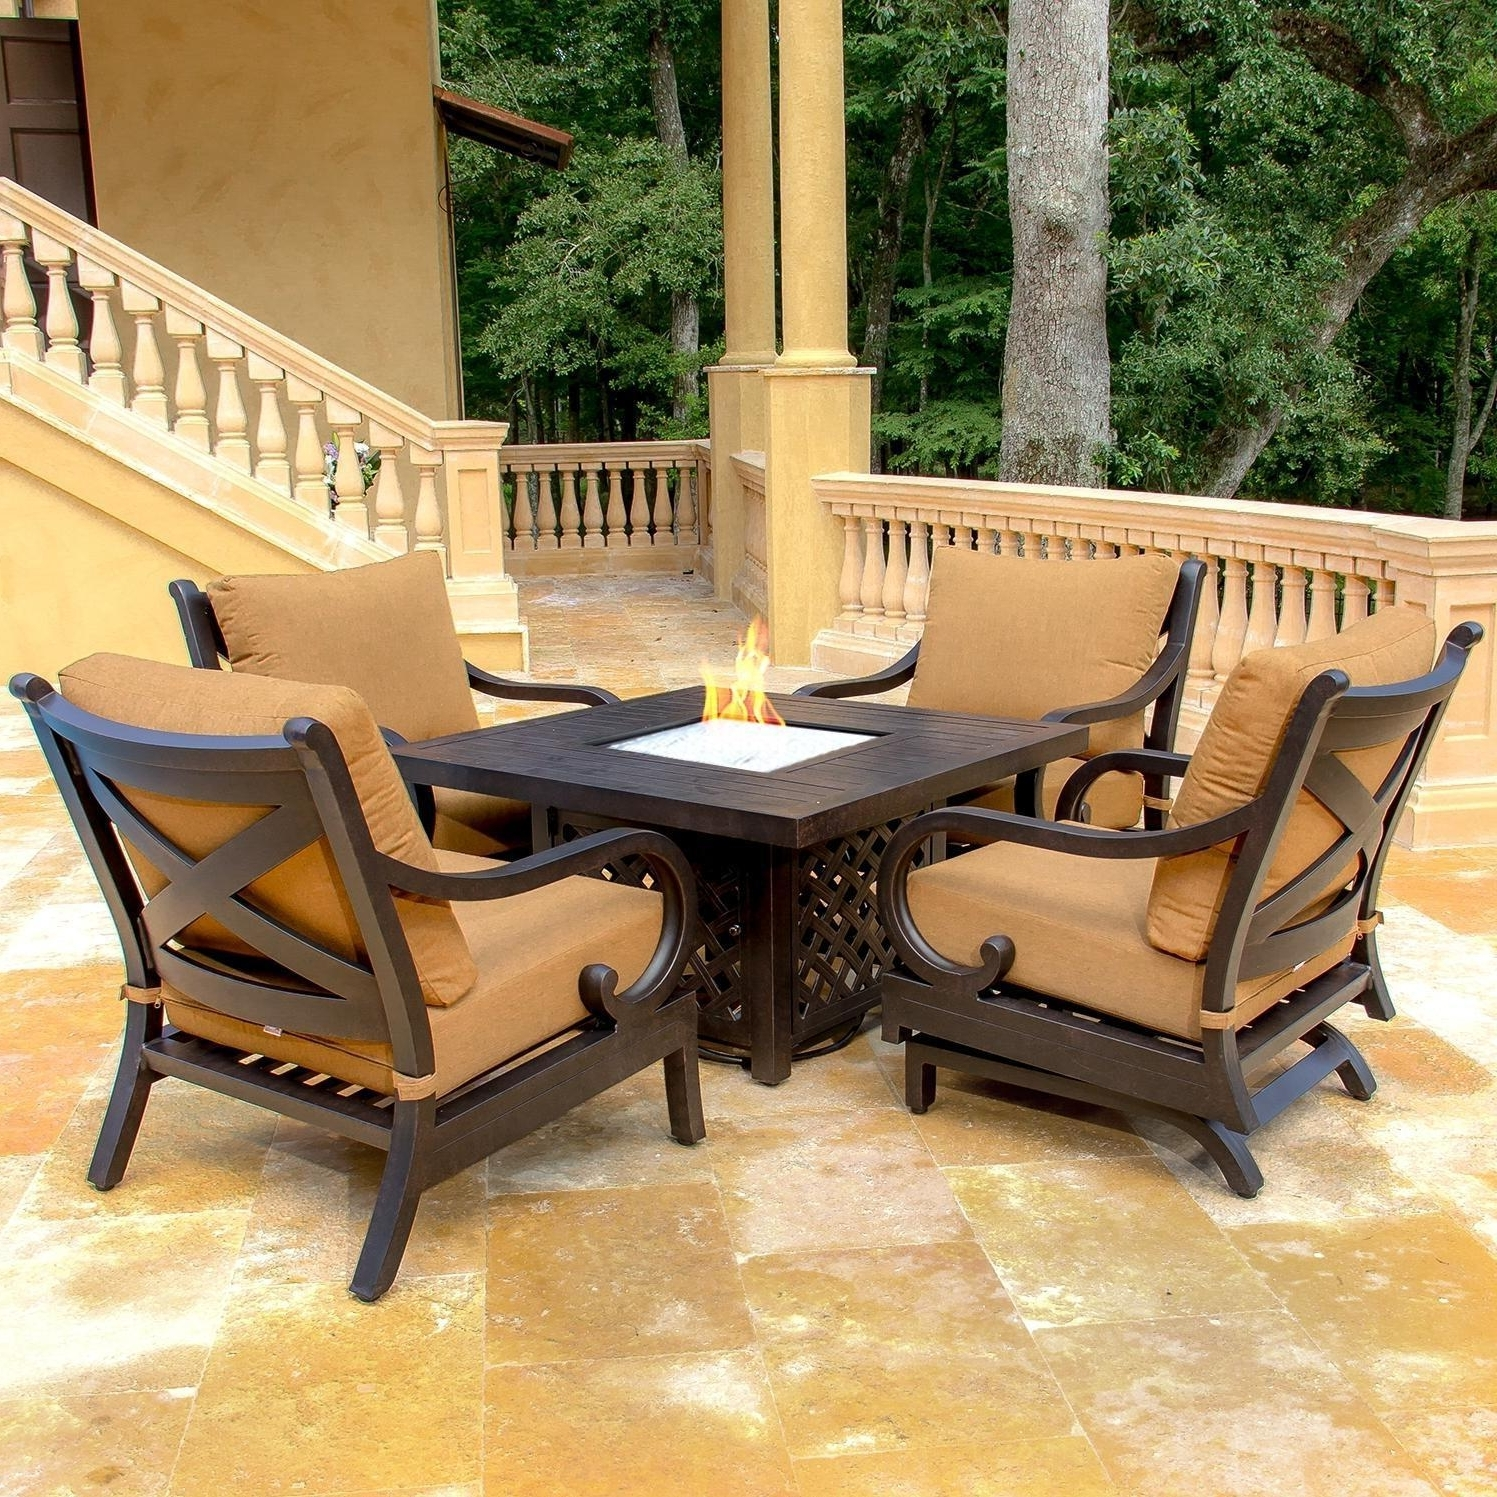 11 Patio Furniture Fire Pit (View 1 of 15)